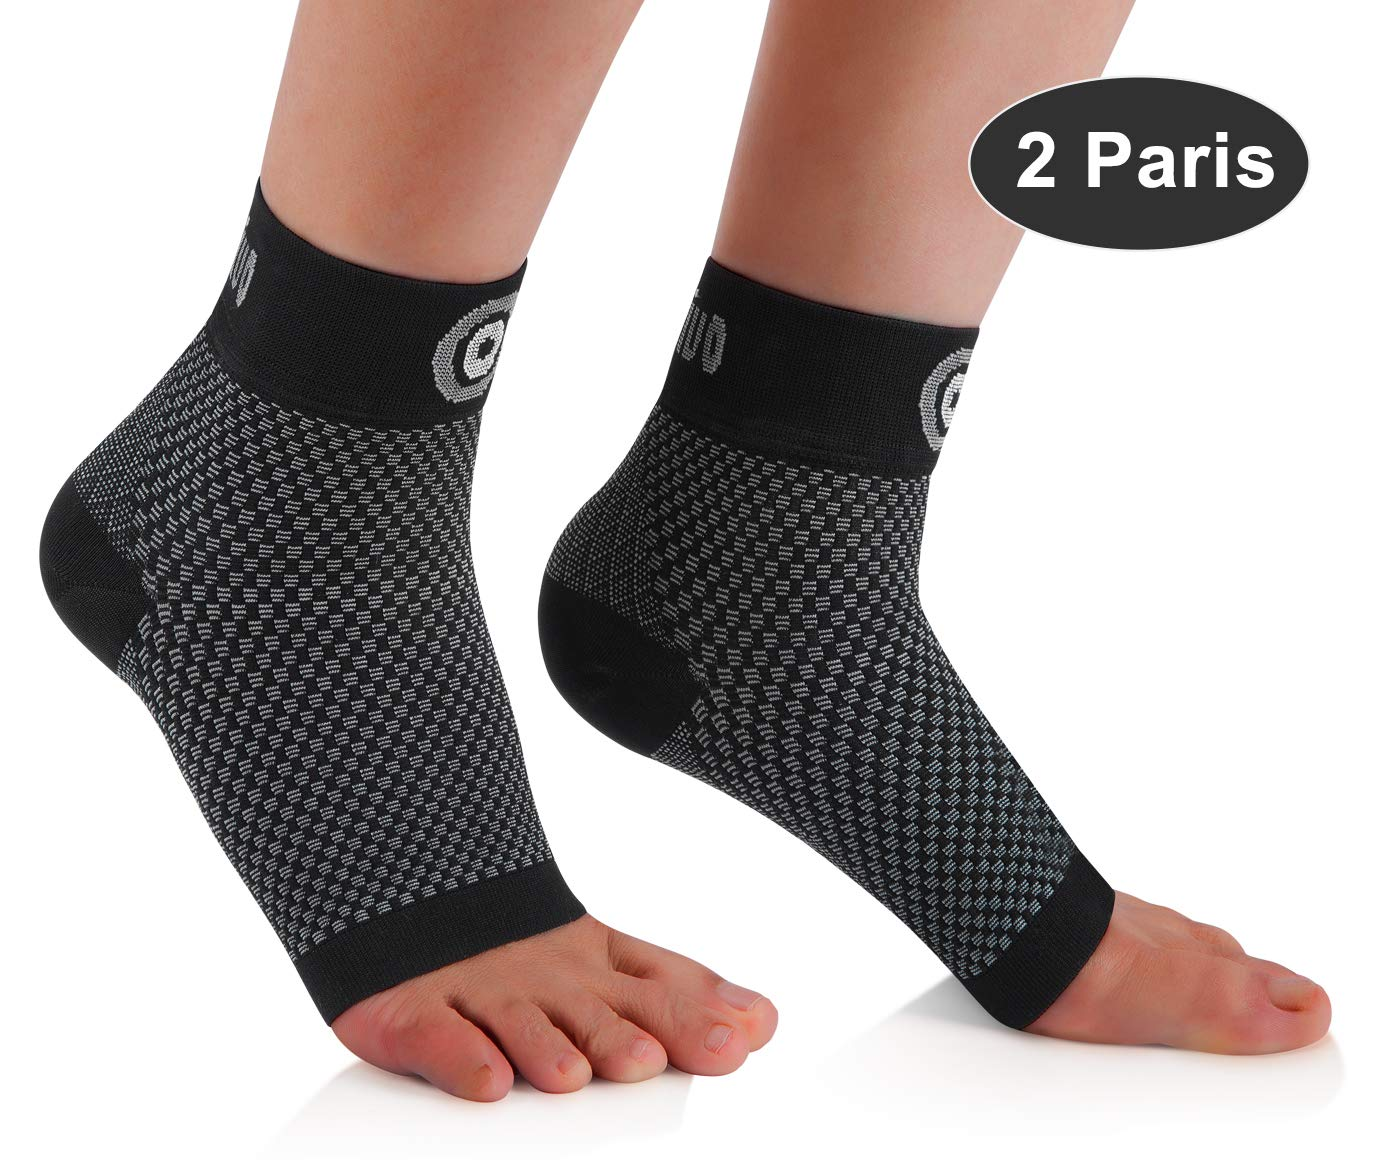 08d44e7df6 Cambivo Ankle Support Brace, Ankle Sleeve Plantar Fasciitis Socks, Fit for  Ankle Sprain, Ideal Foot Sleeve for Injury Recovery, Joint Pain, Eases  Swelling, ...